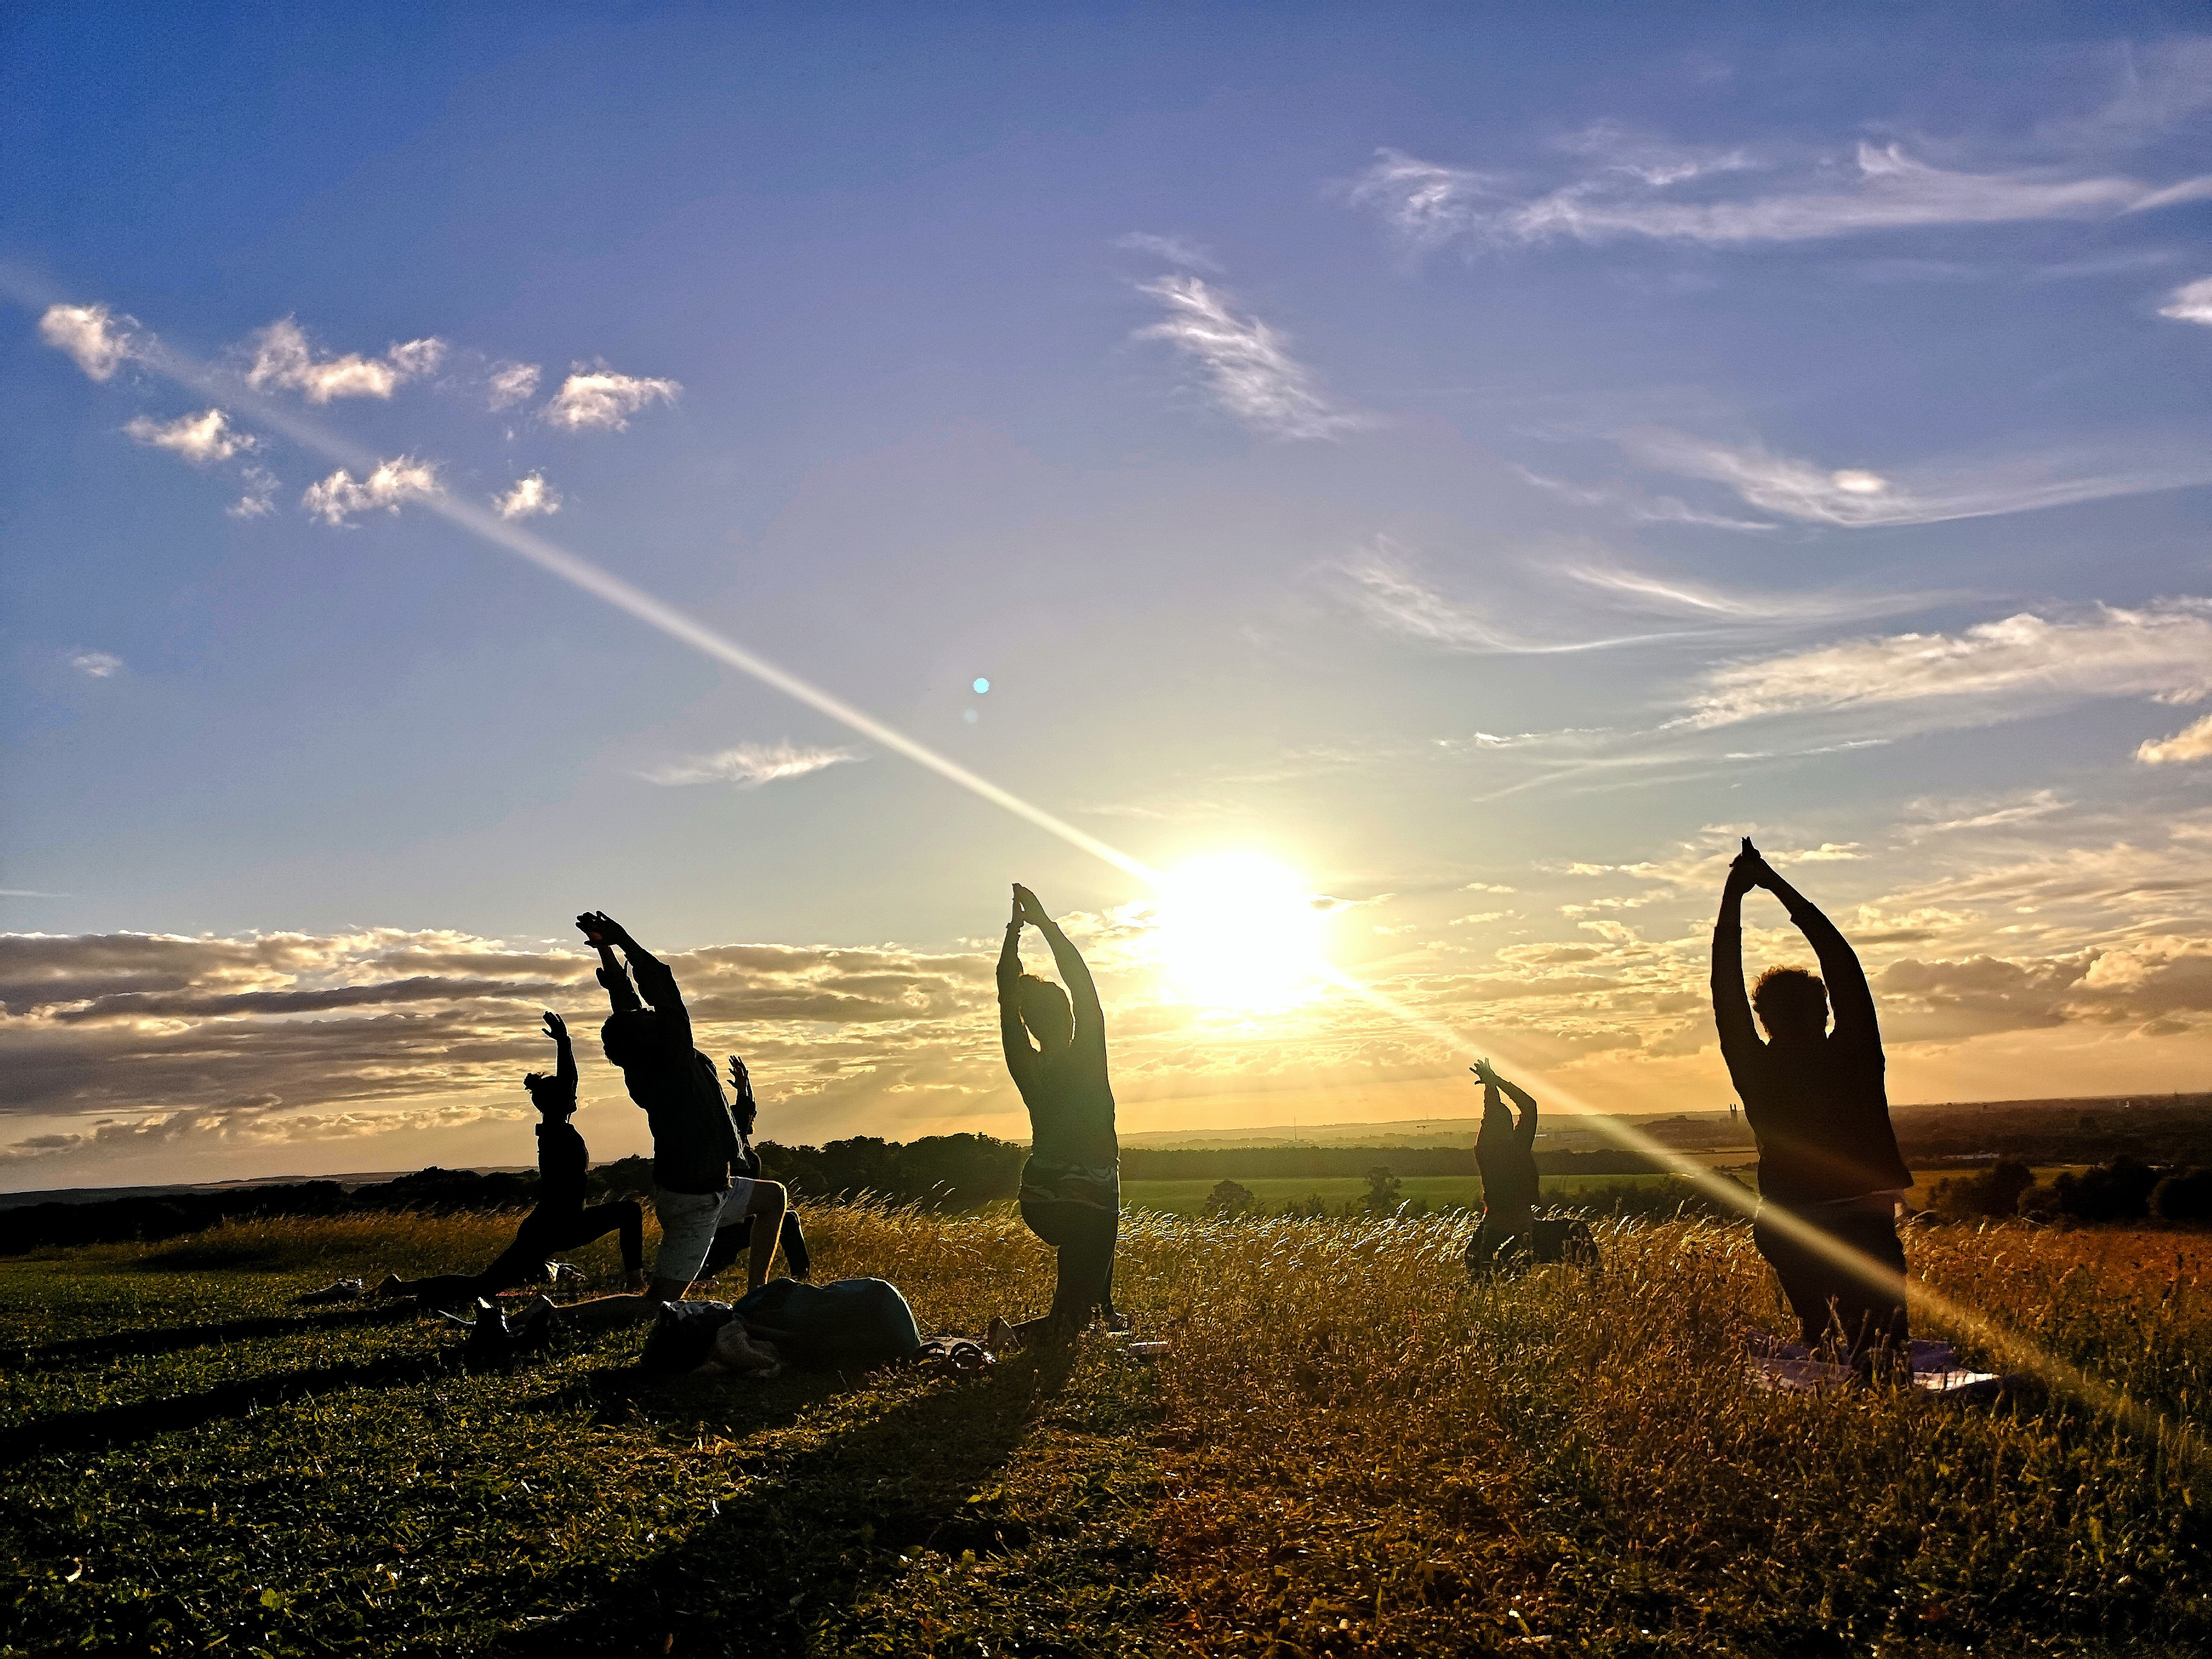 Weekend Hatha Yoga in the park 10:30am